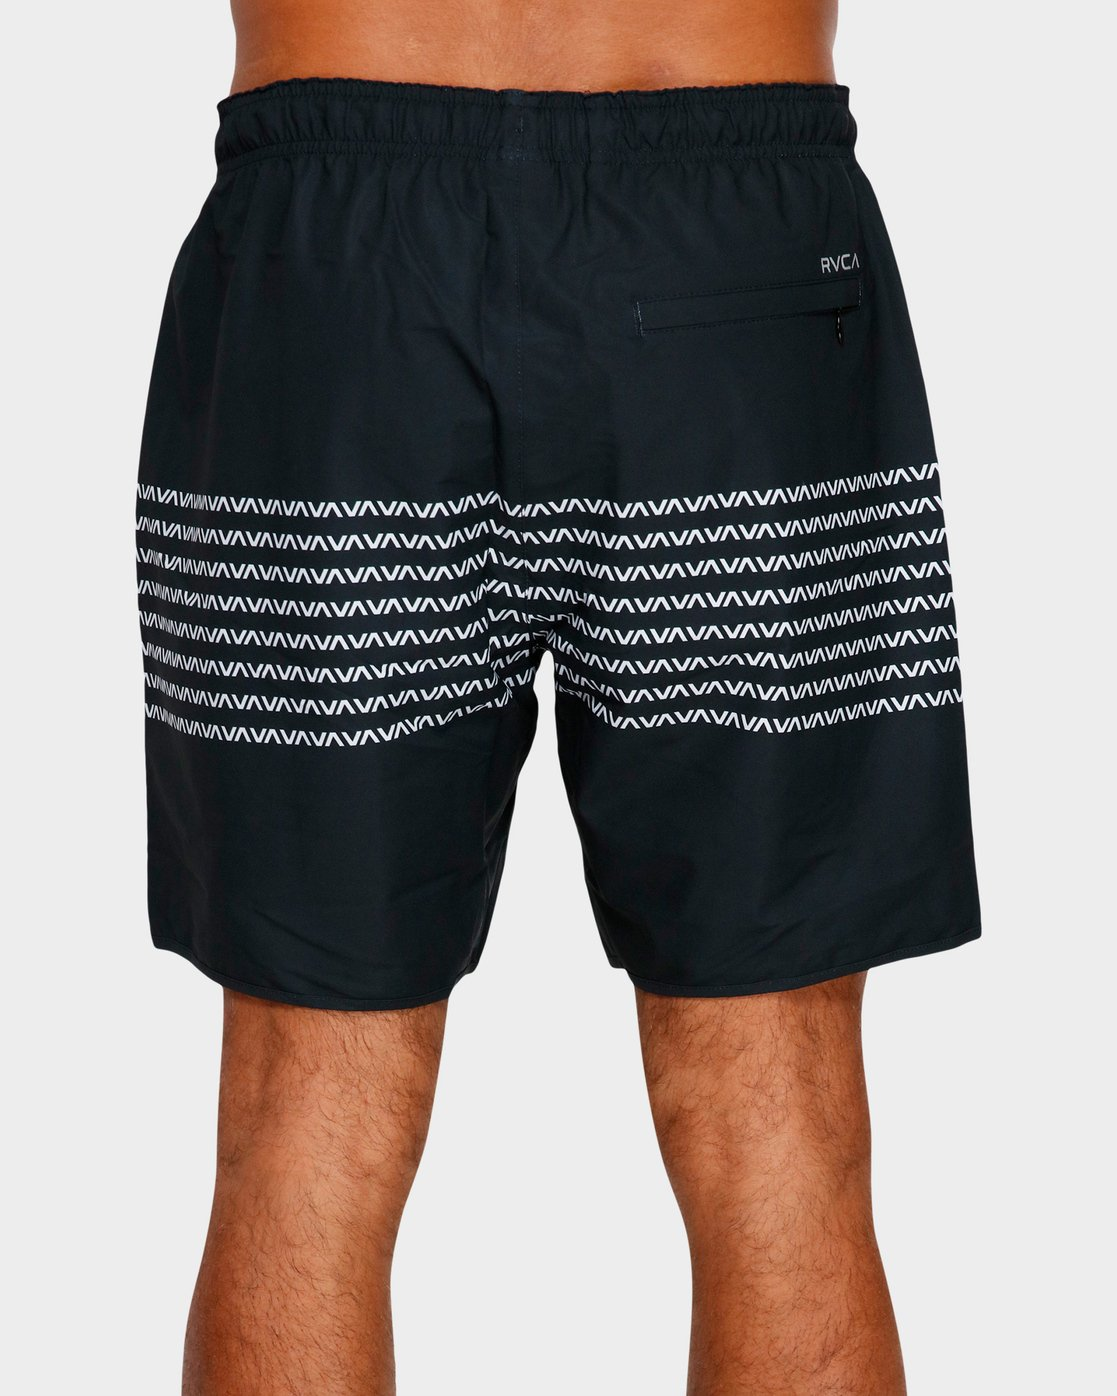 2 YOGGER STRETCH SHORTS Black R393313 RVCA